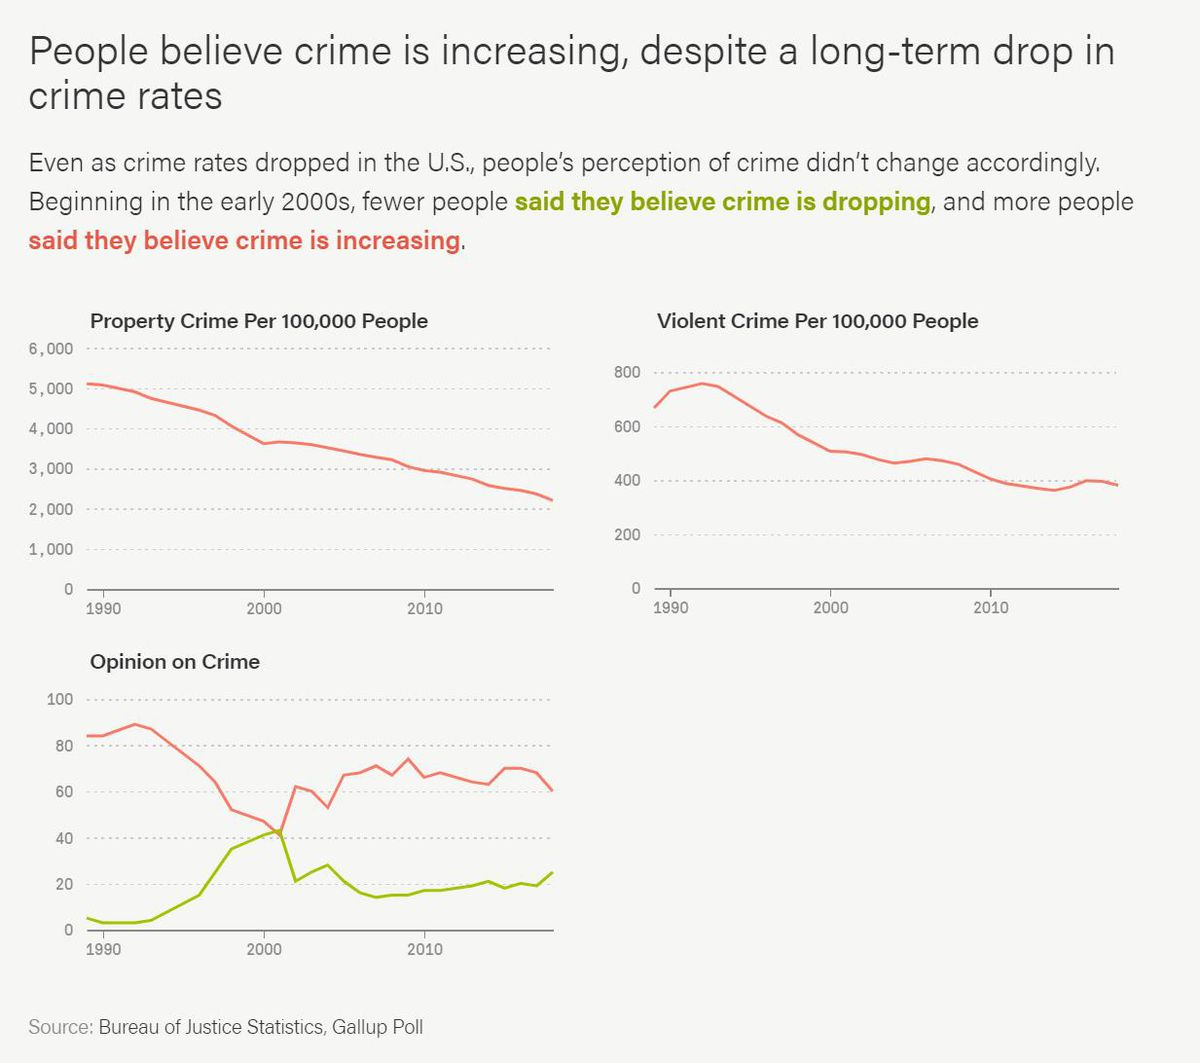 Even as crime rates dropped in the U.S., people's perception of crime didn't change accordingly. Beginning in the early 2000s, fewer people said they believe crime is dropping, and more said it was increasing.